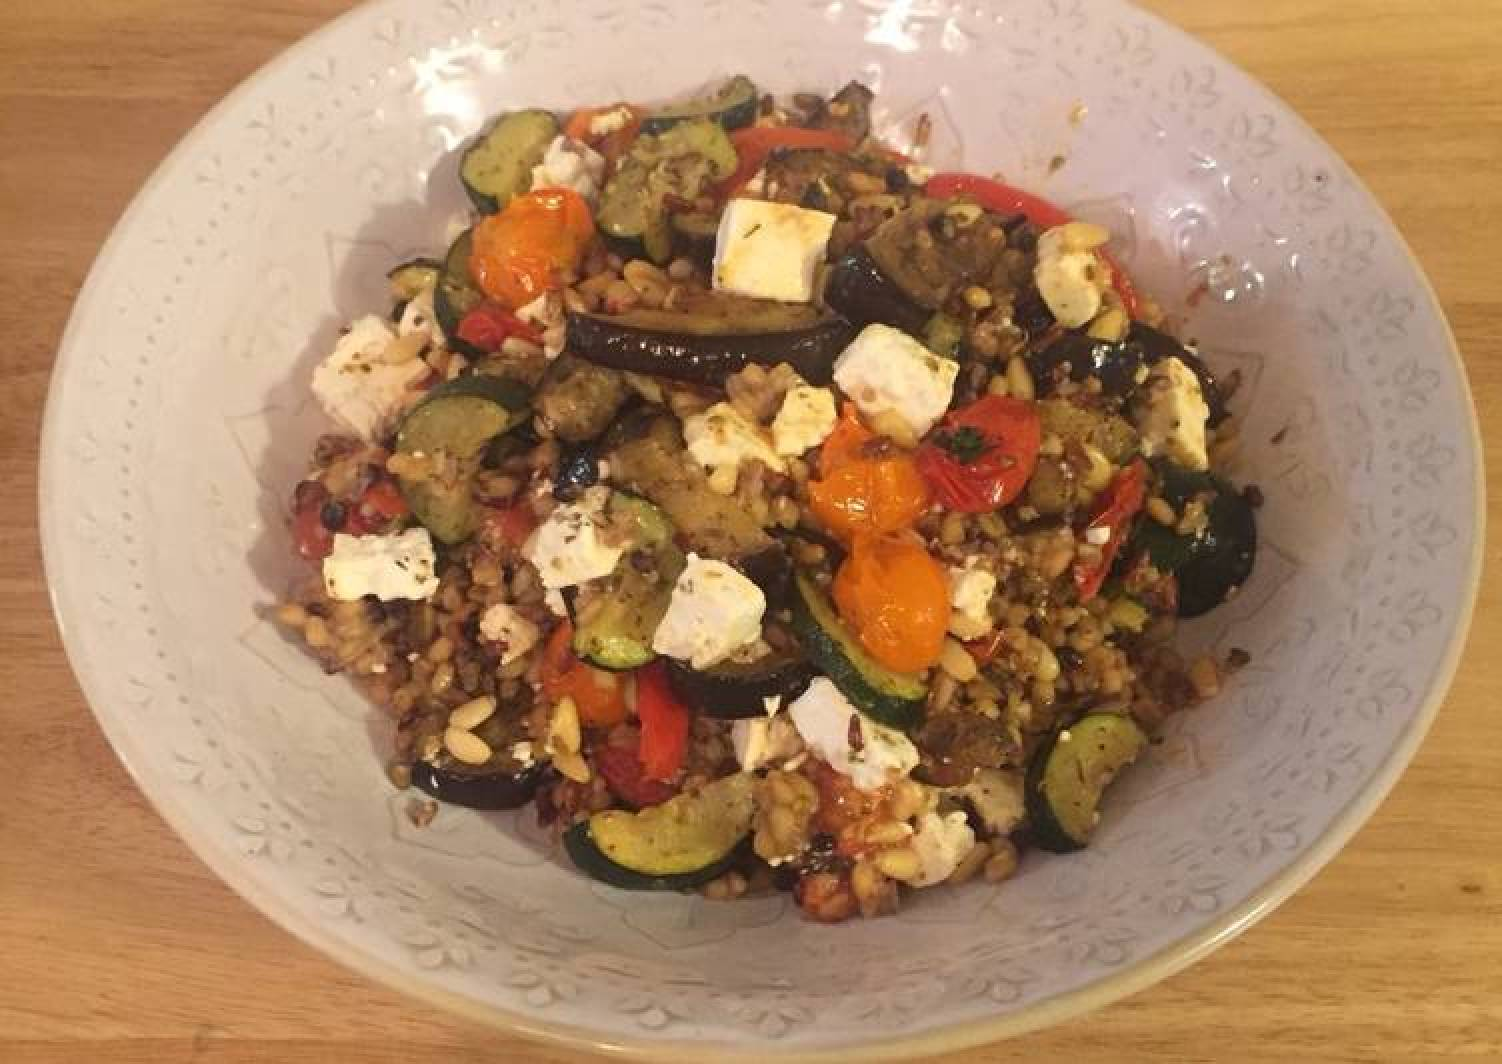 Roasted veg with grains and feta